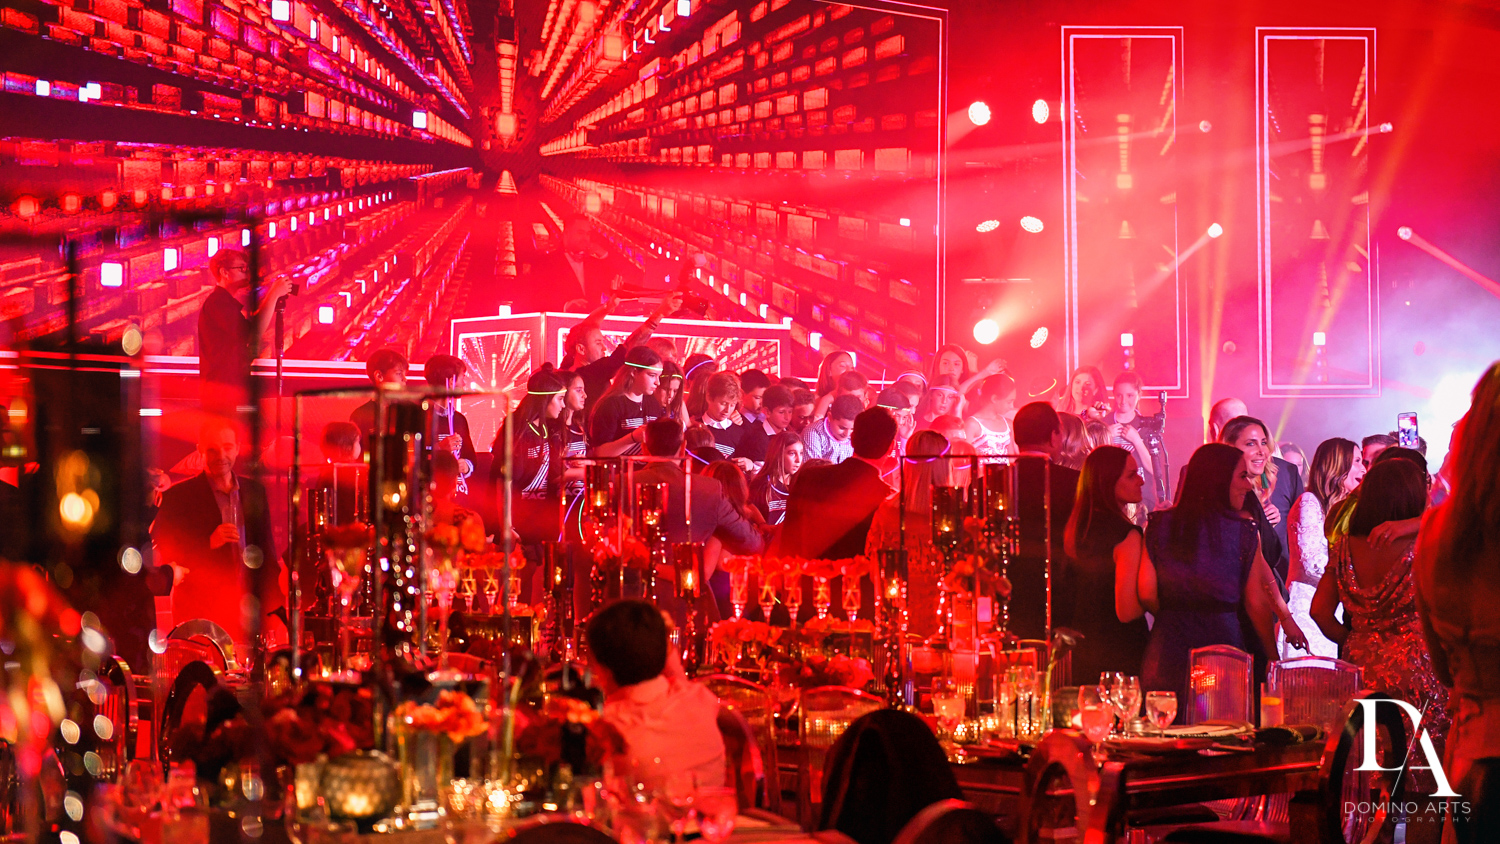 red room at Luxury Celebrity Bat Mitzvah at Four Seasons Hotel Miami by Domino Arts Photography